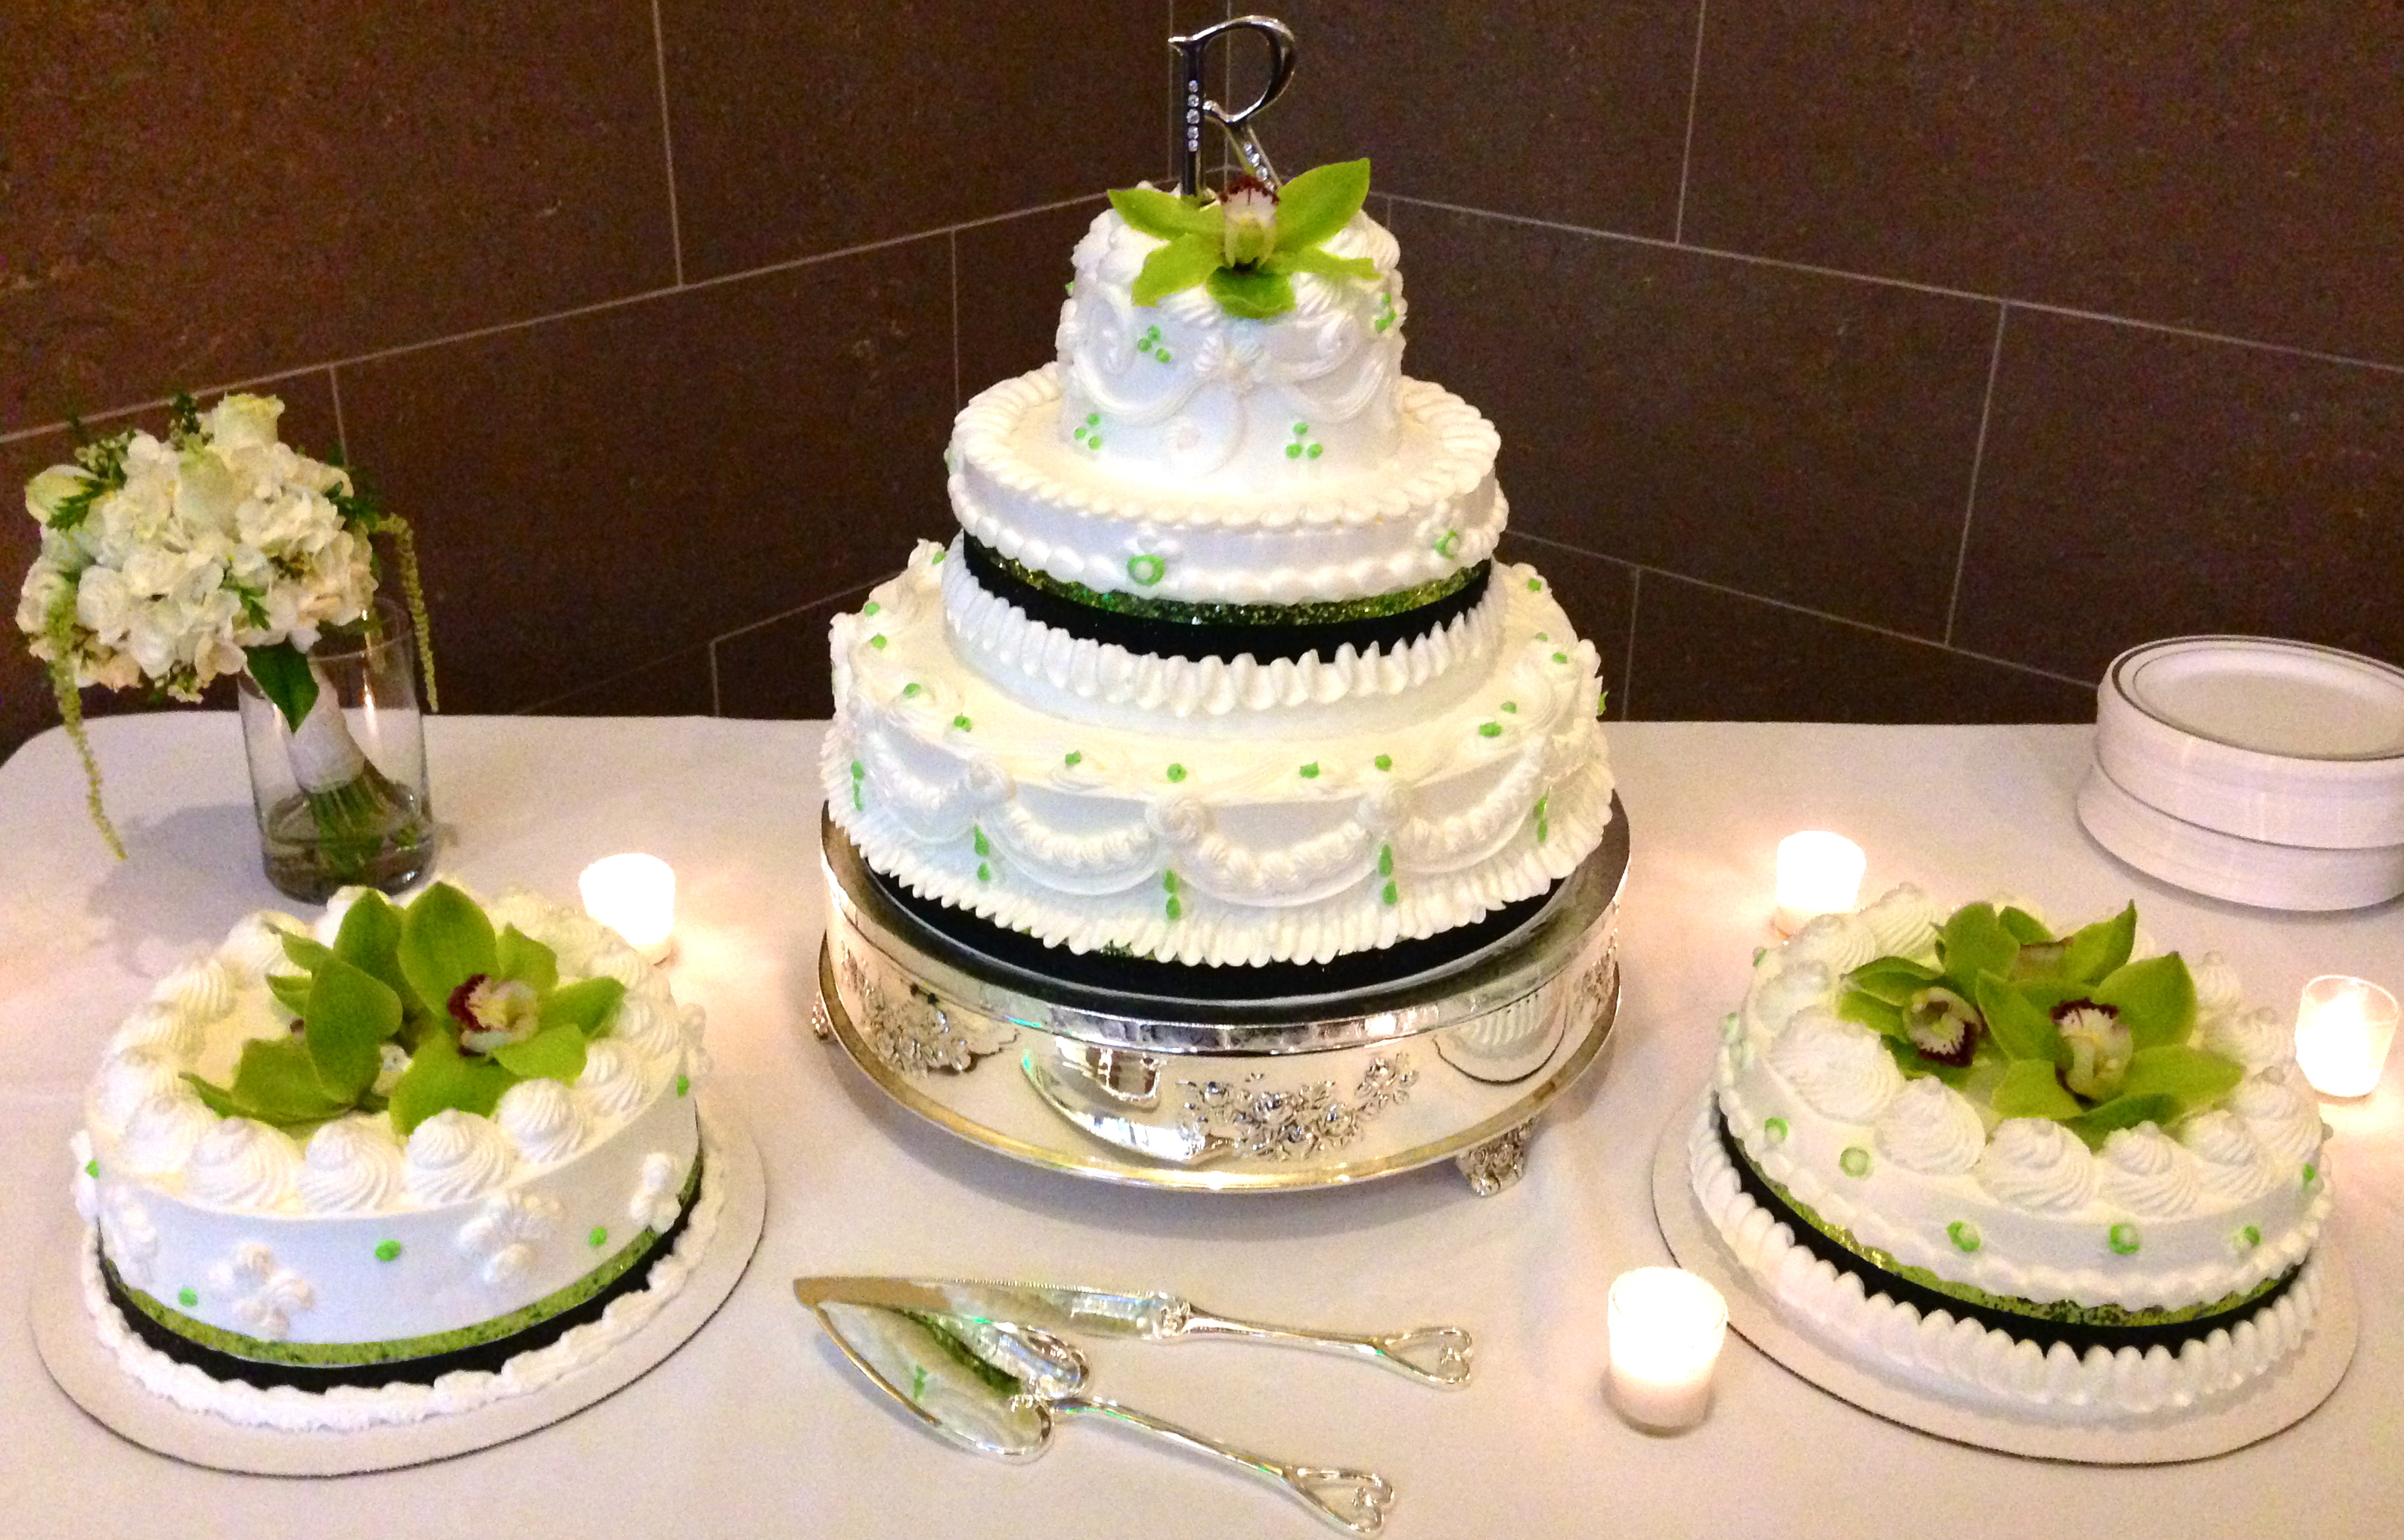 Wedding Cakes - Weddings Cake Pictures